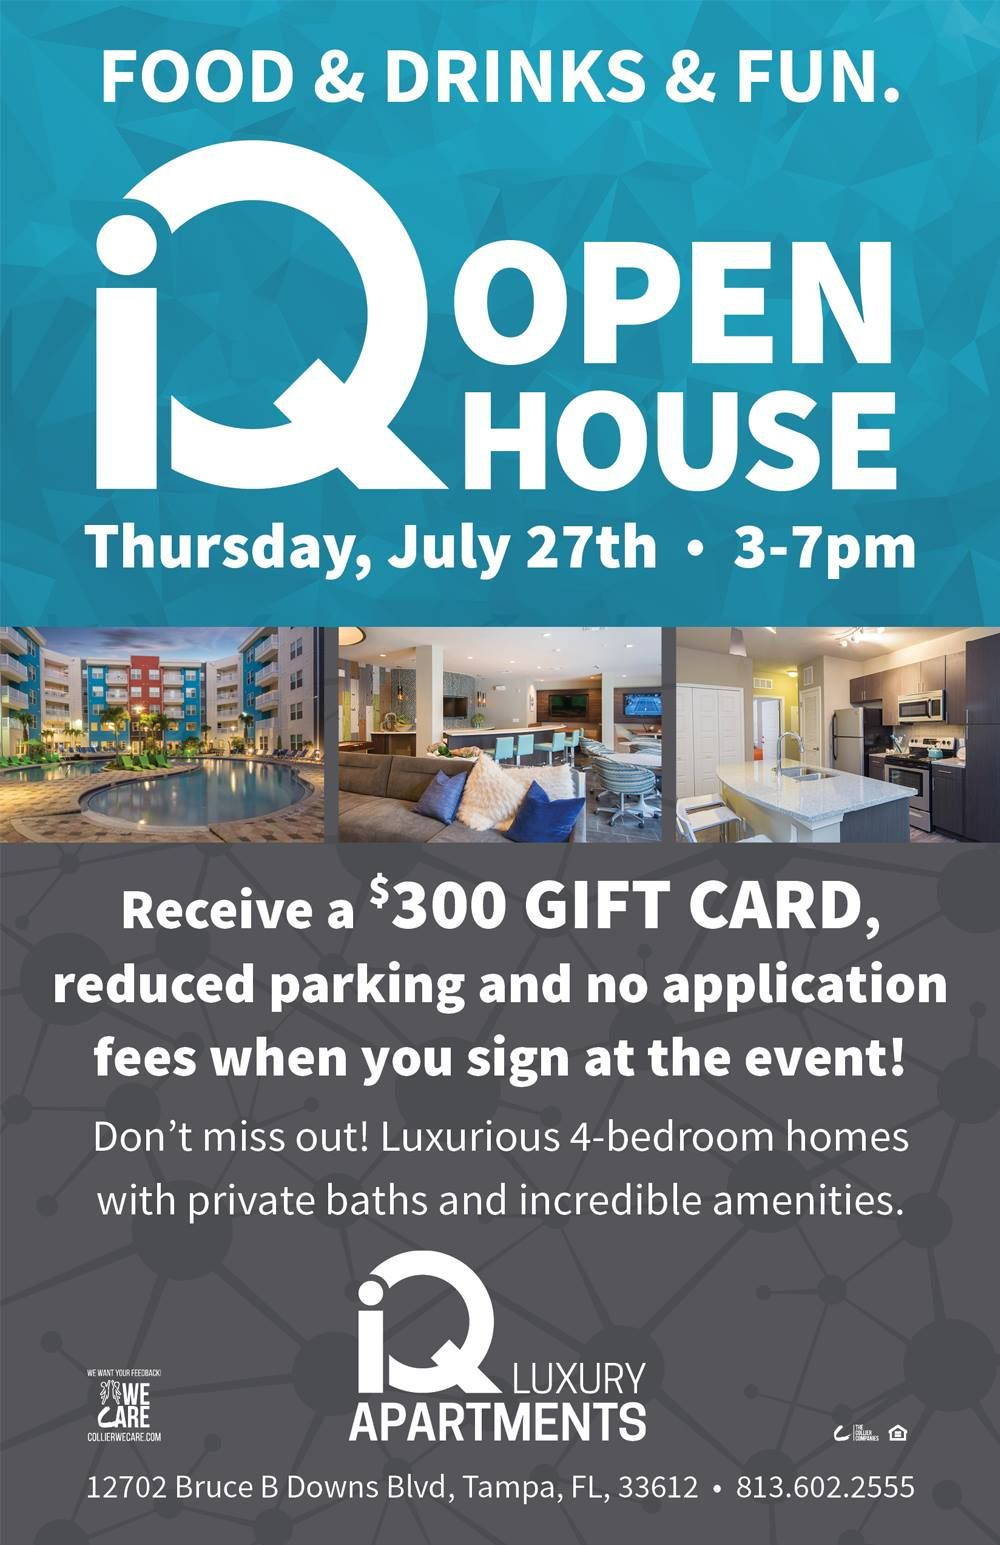 Open House This Thursday In Tampa At Iq Luxury Apartments For More Information Call 813 602 2555 Livesmart Florida Apartments Luxury Apartments Open House